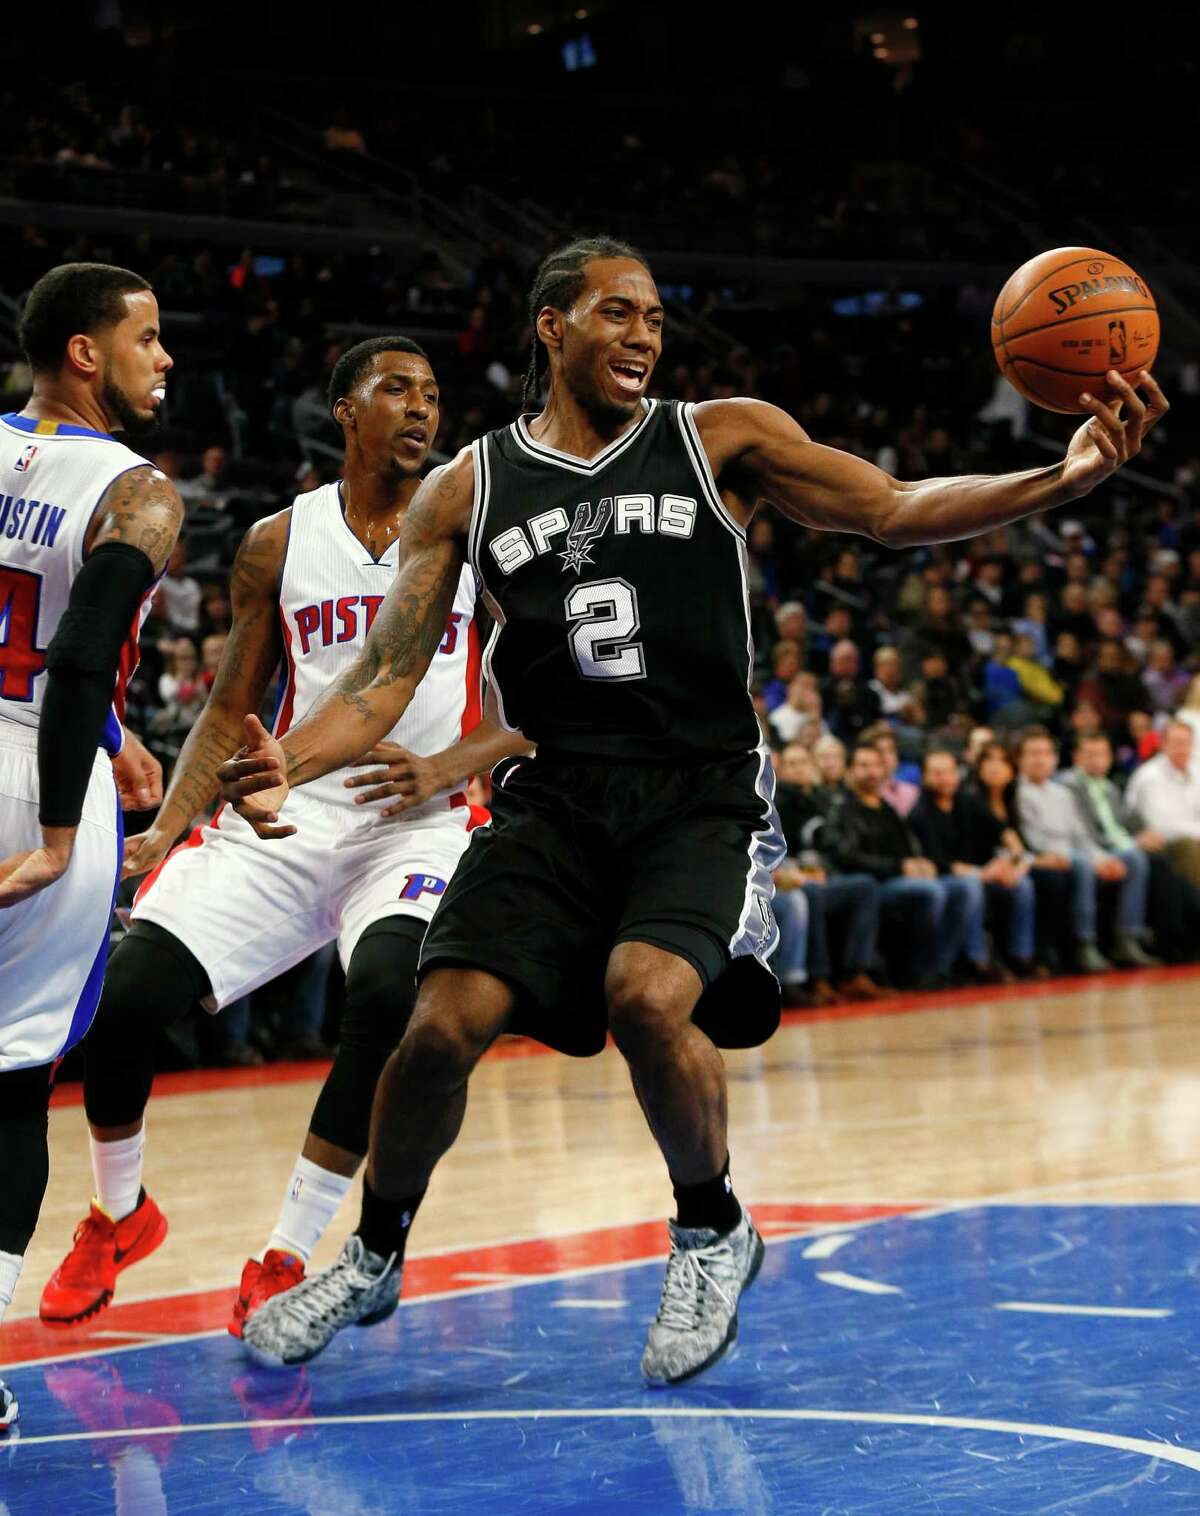 San Antonio Spurs forward Kawhi Leonard (2) loses control of the ball against the Detroit Pistons in the first half.